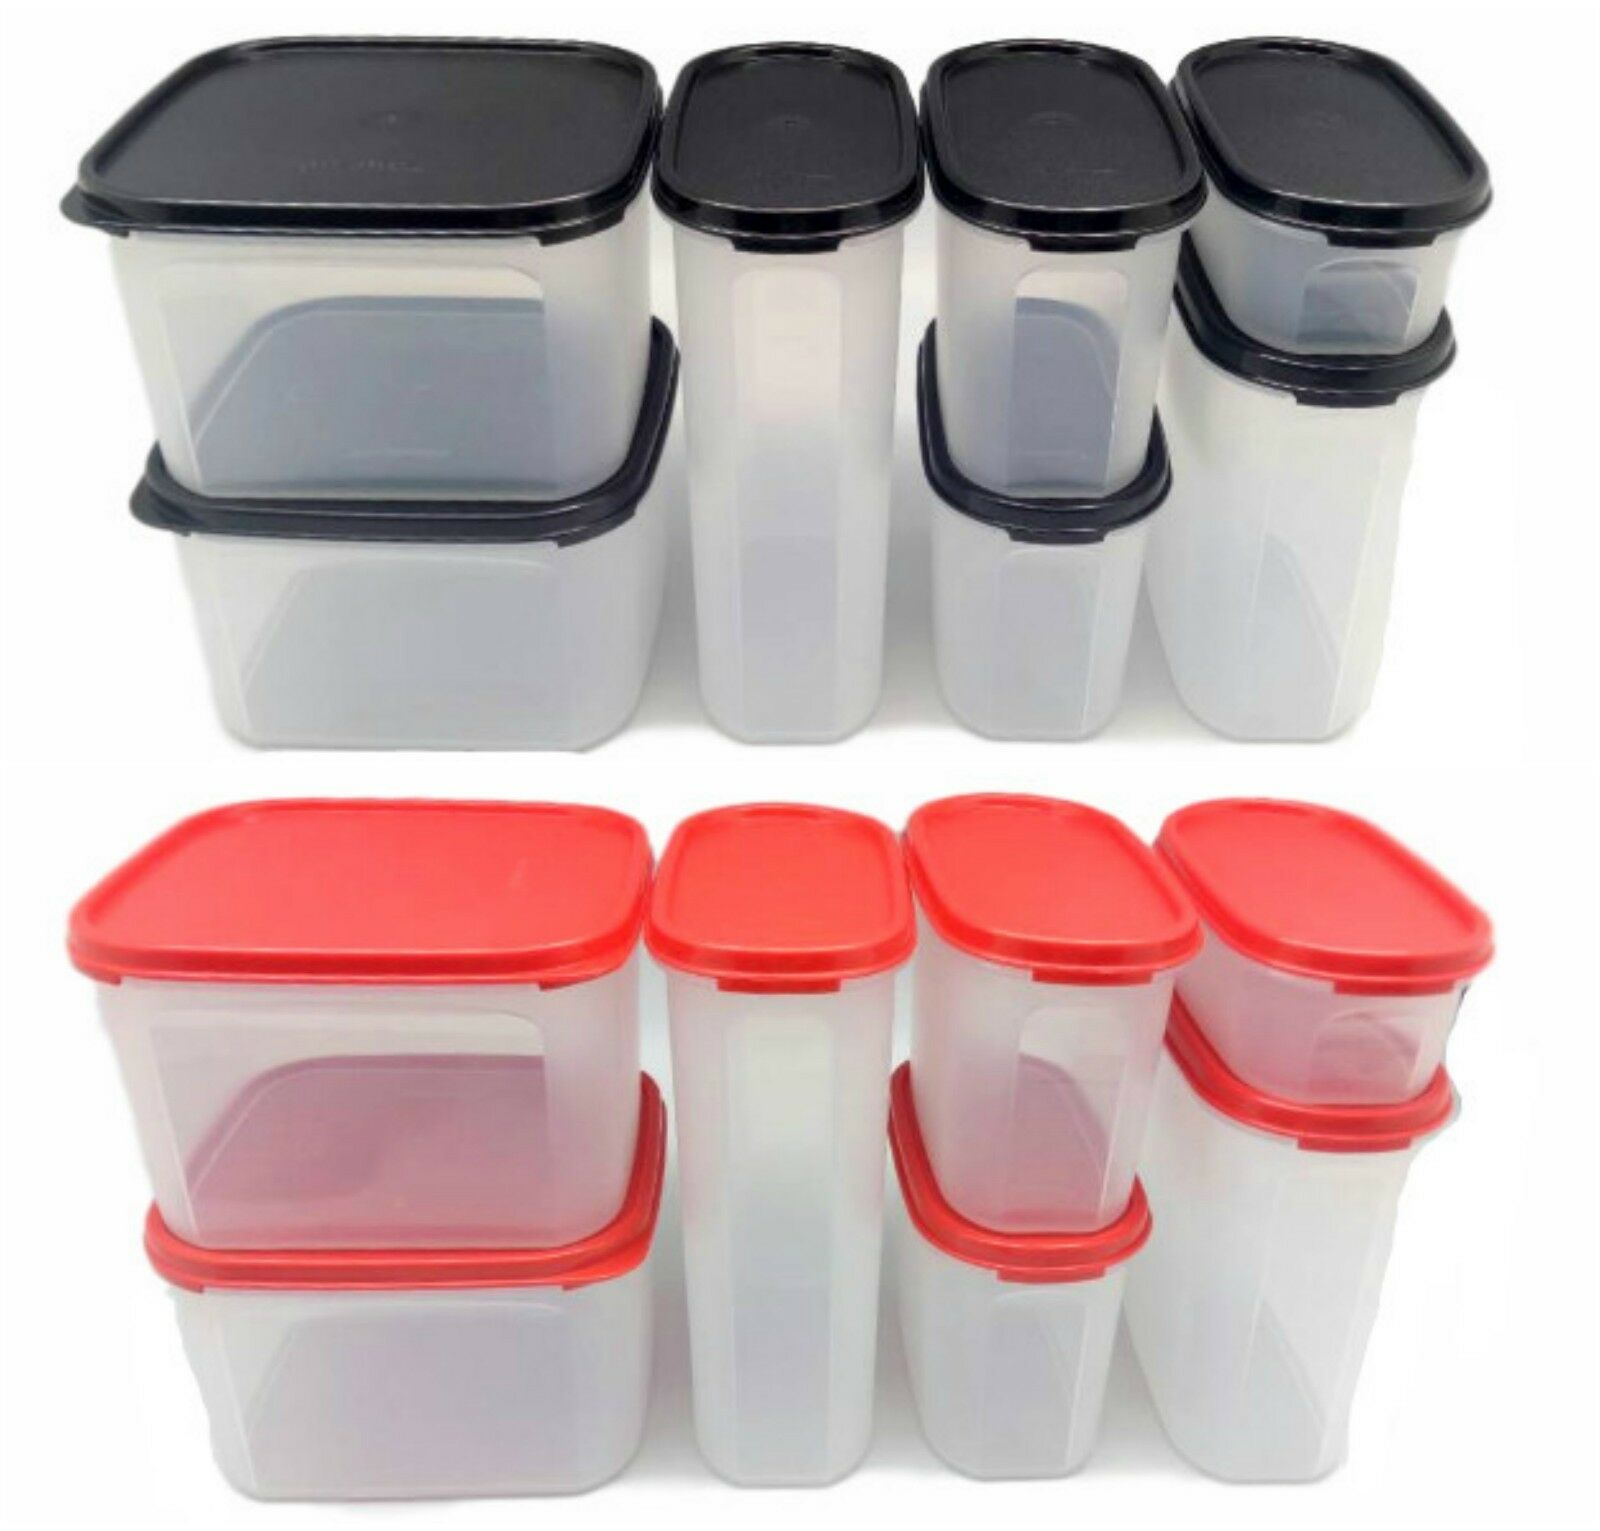 Tupperware Modular Mates Oval Square Combo: Free Shipping Black//Red Set of 4